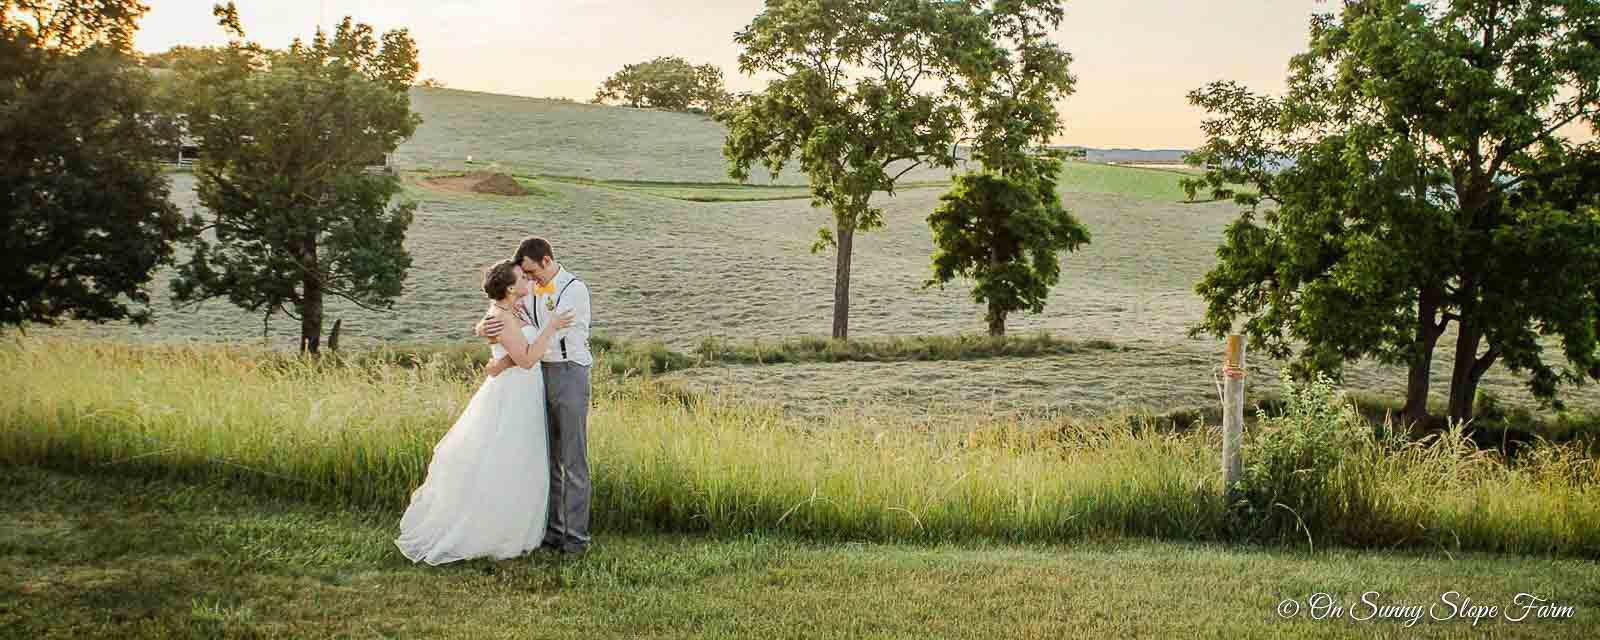 Real_Wedding_On_Sunny_Slope_Farm-14